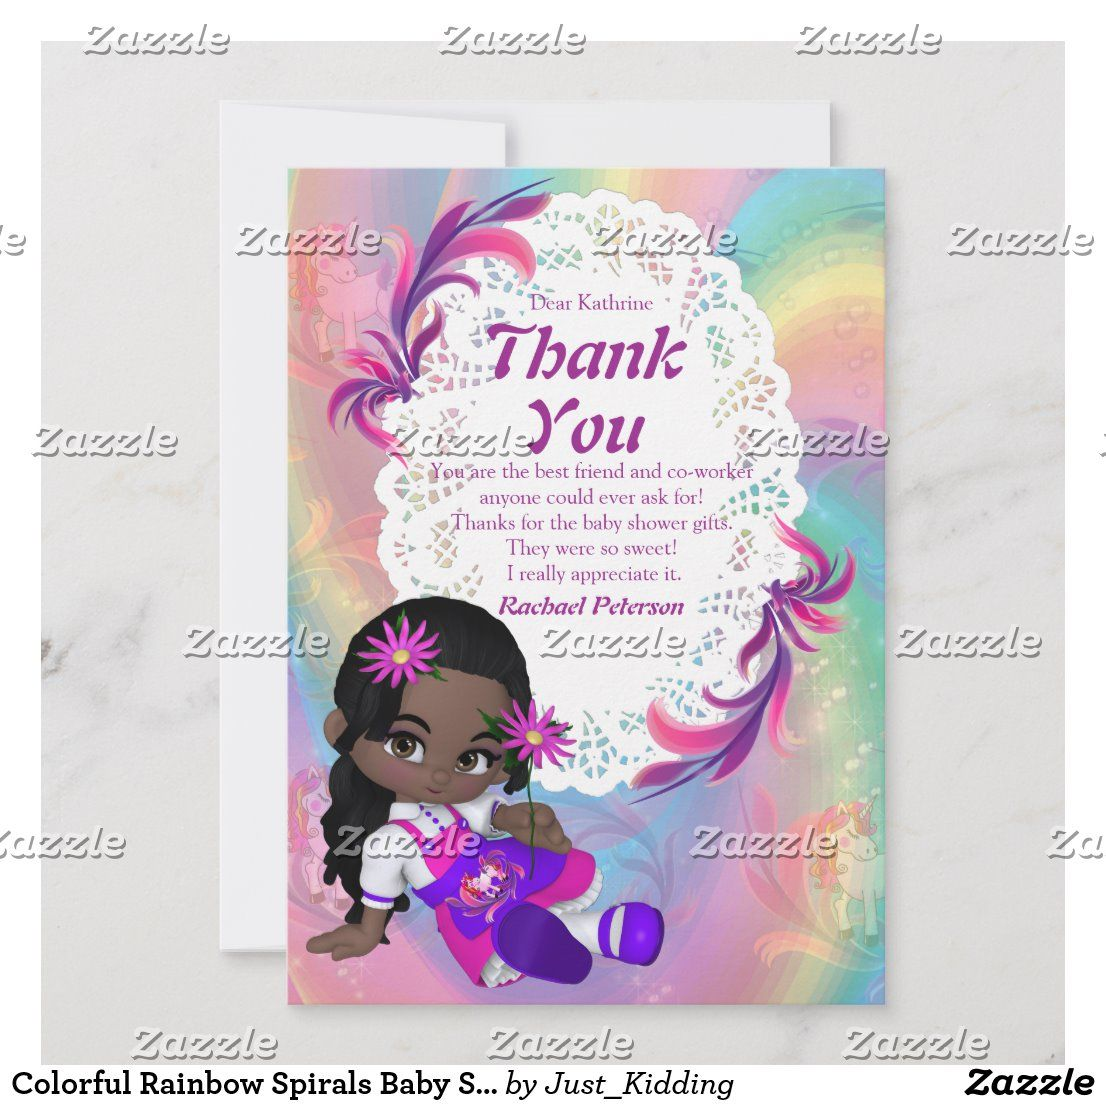 Colorful Rainbow Spirals Baby Shower Thank You Card | Zazzle.com